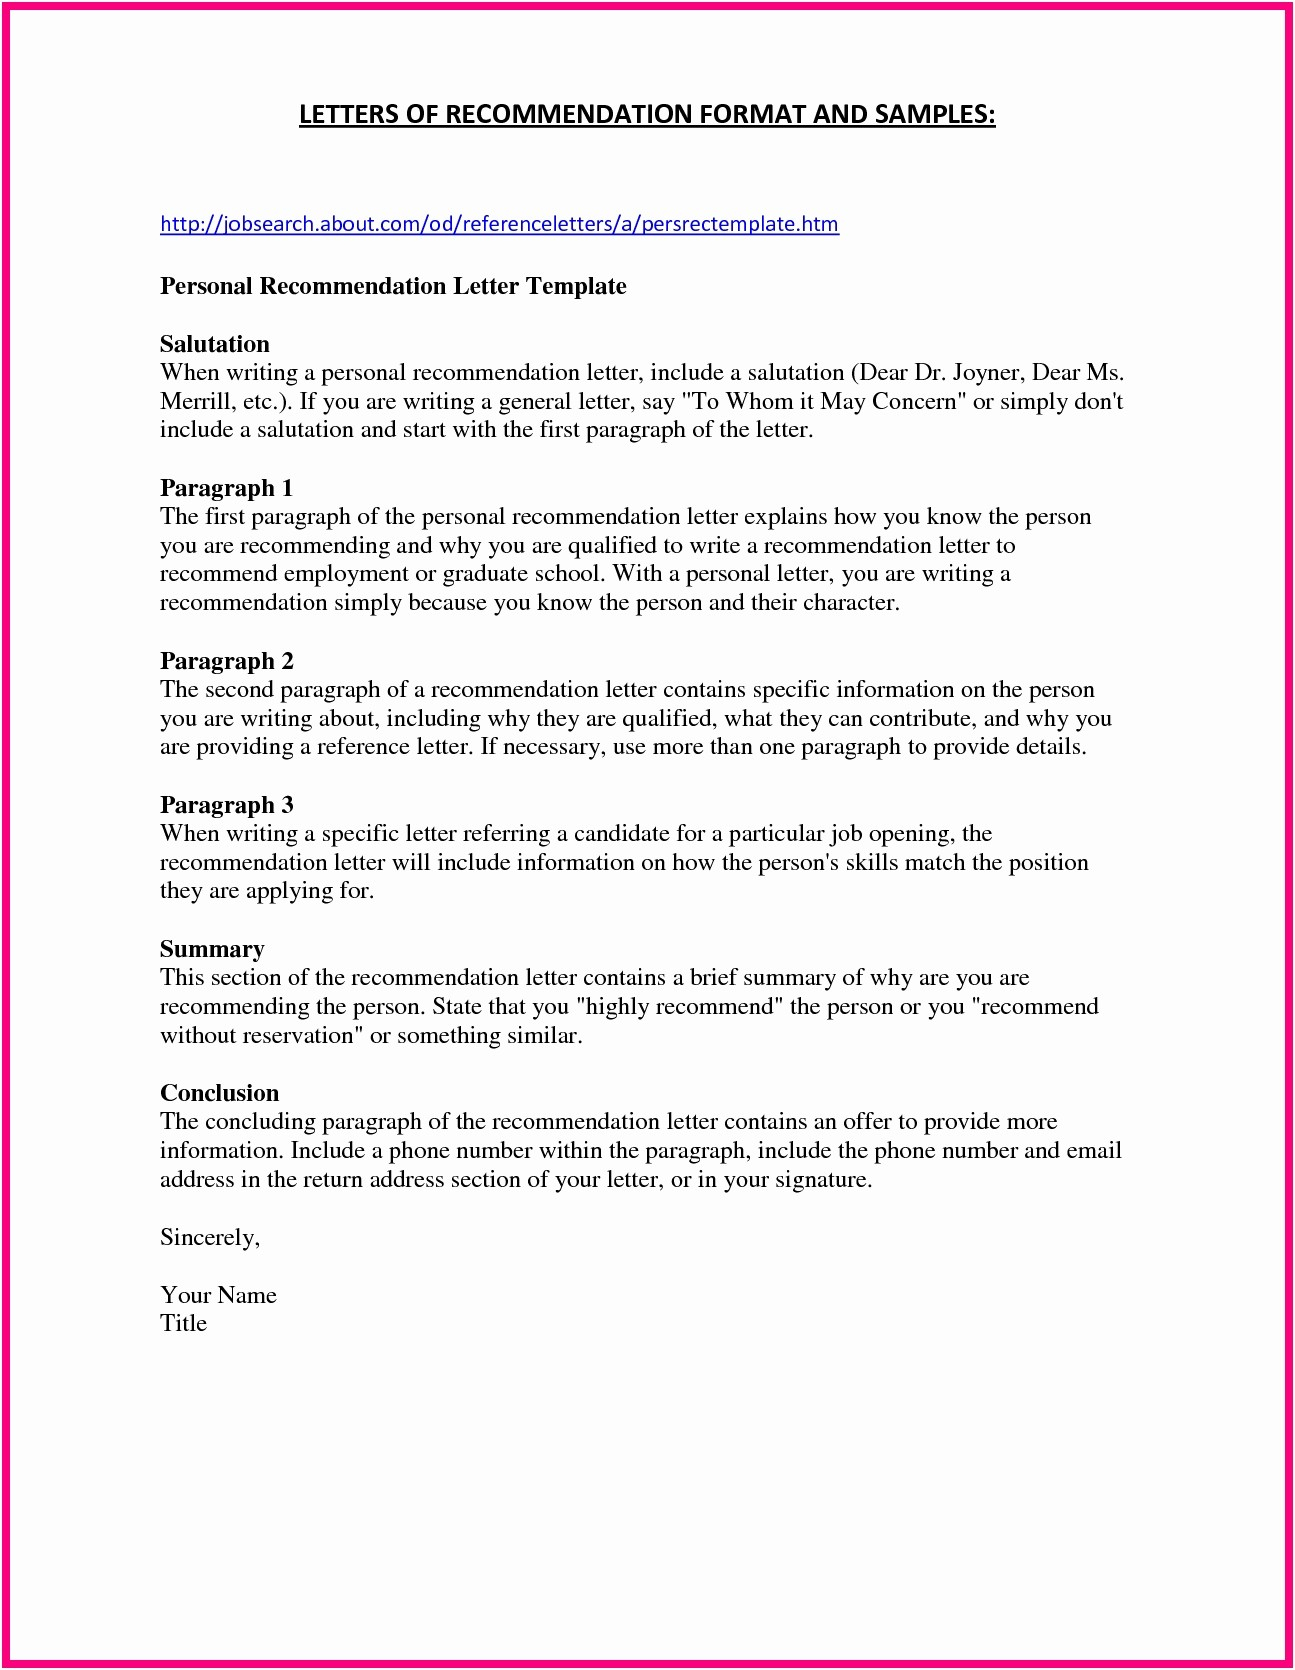 10 eagle scout letter of recommendation template